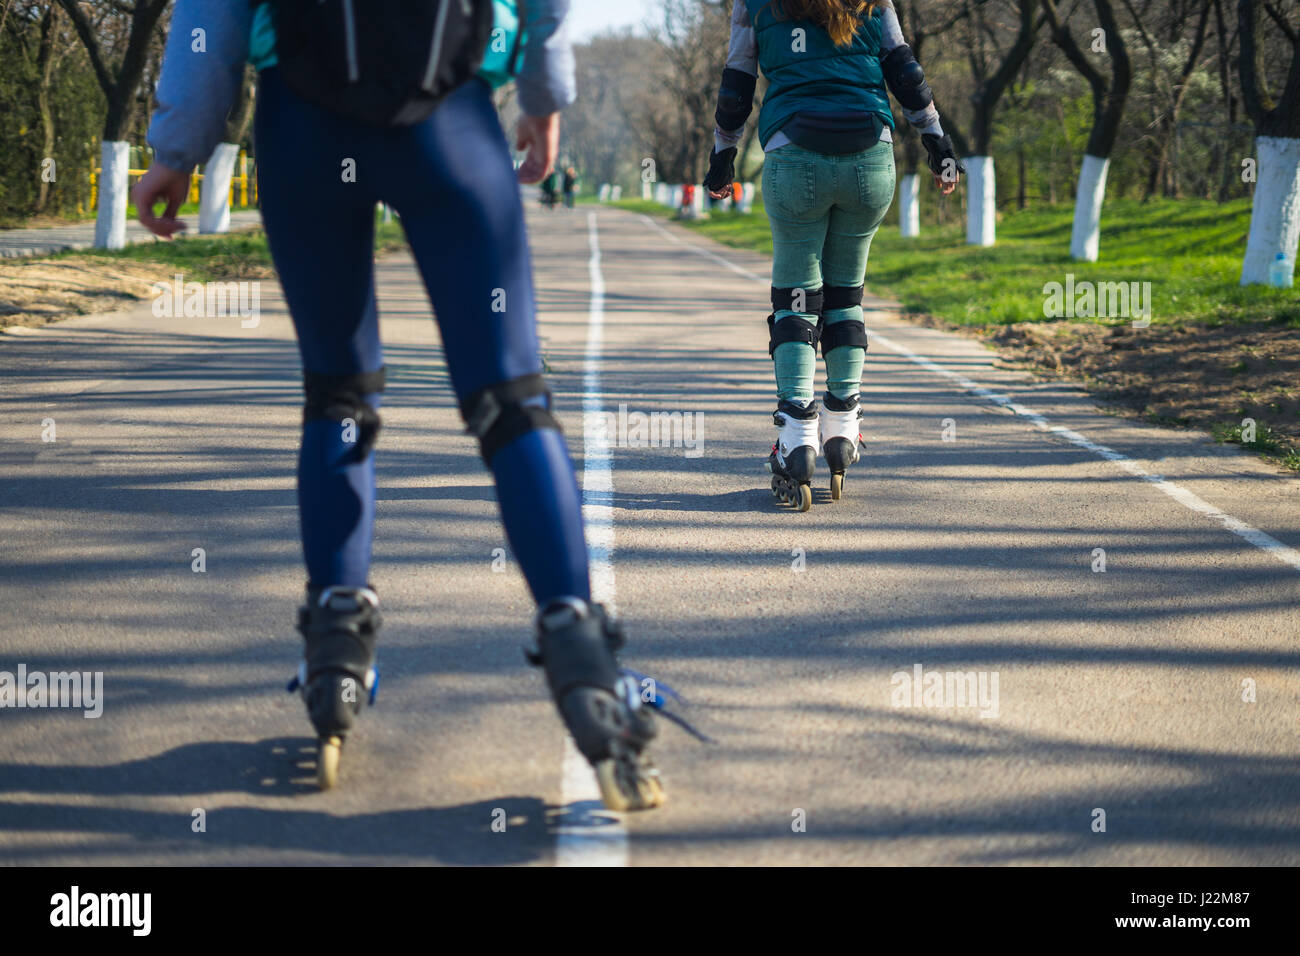 on roller blades stock photos u0026 on roller blades stock images alamy